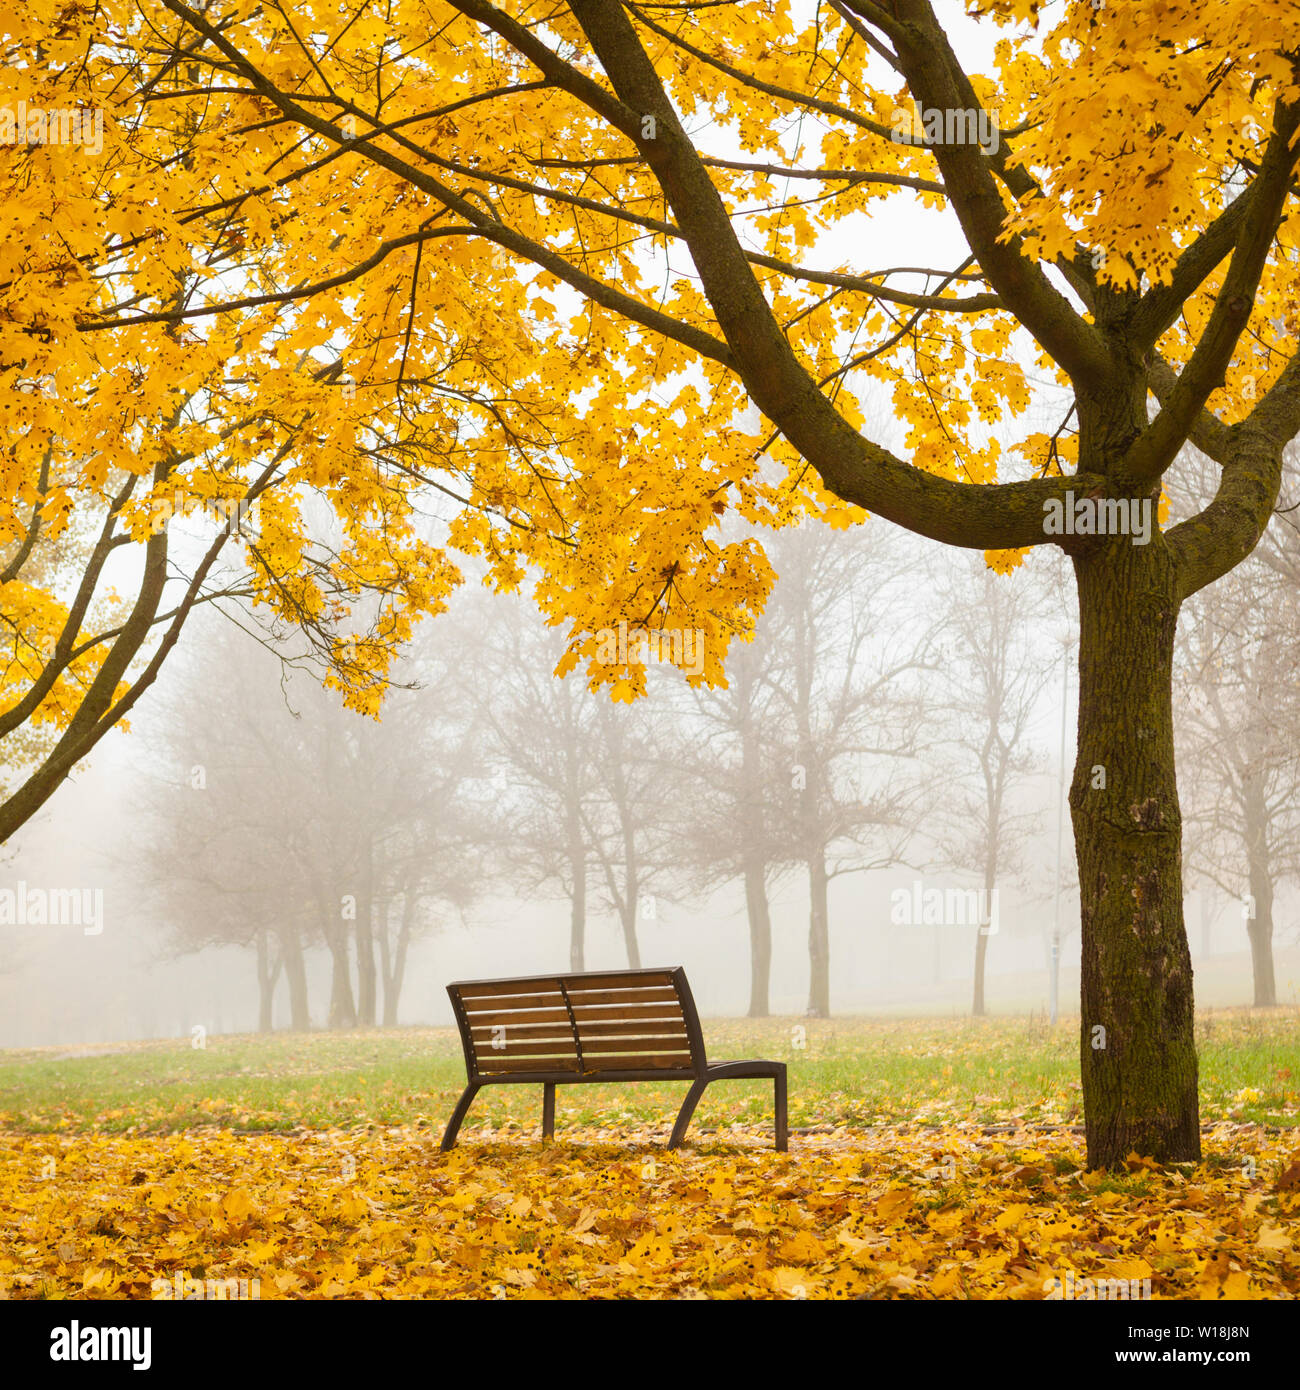 Colorful Foggy Autumn Park With Bench And Yellow Maple Tree